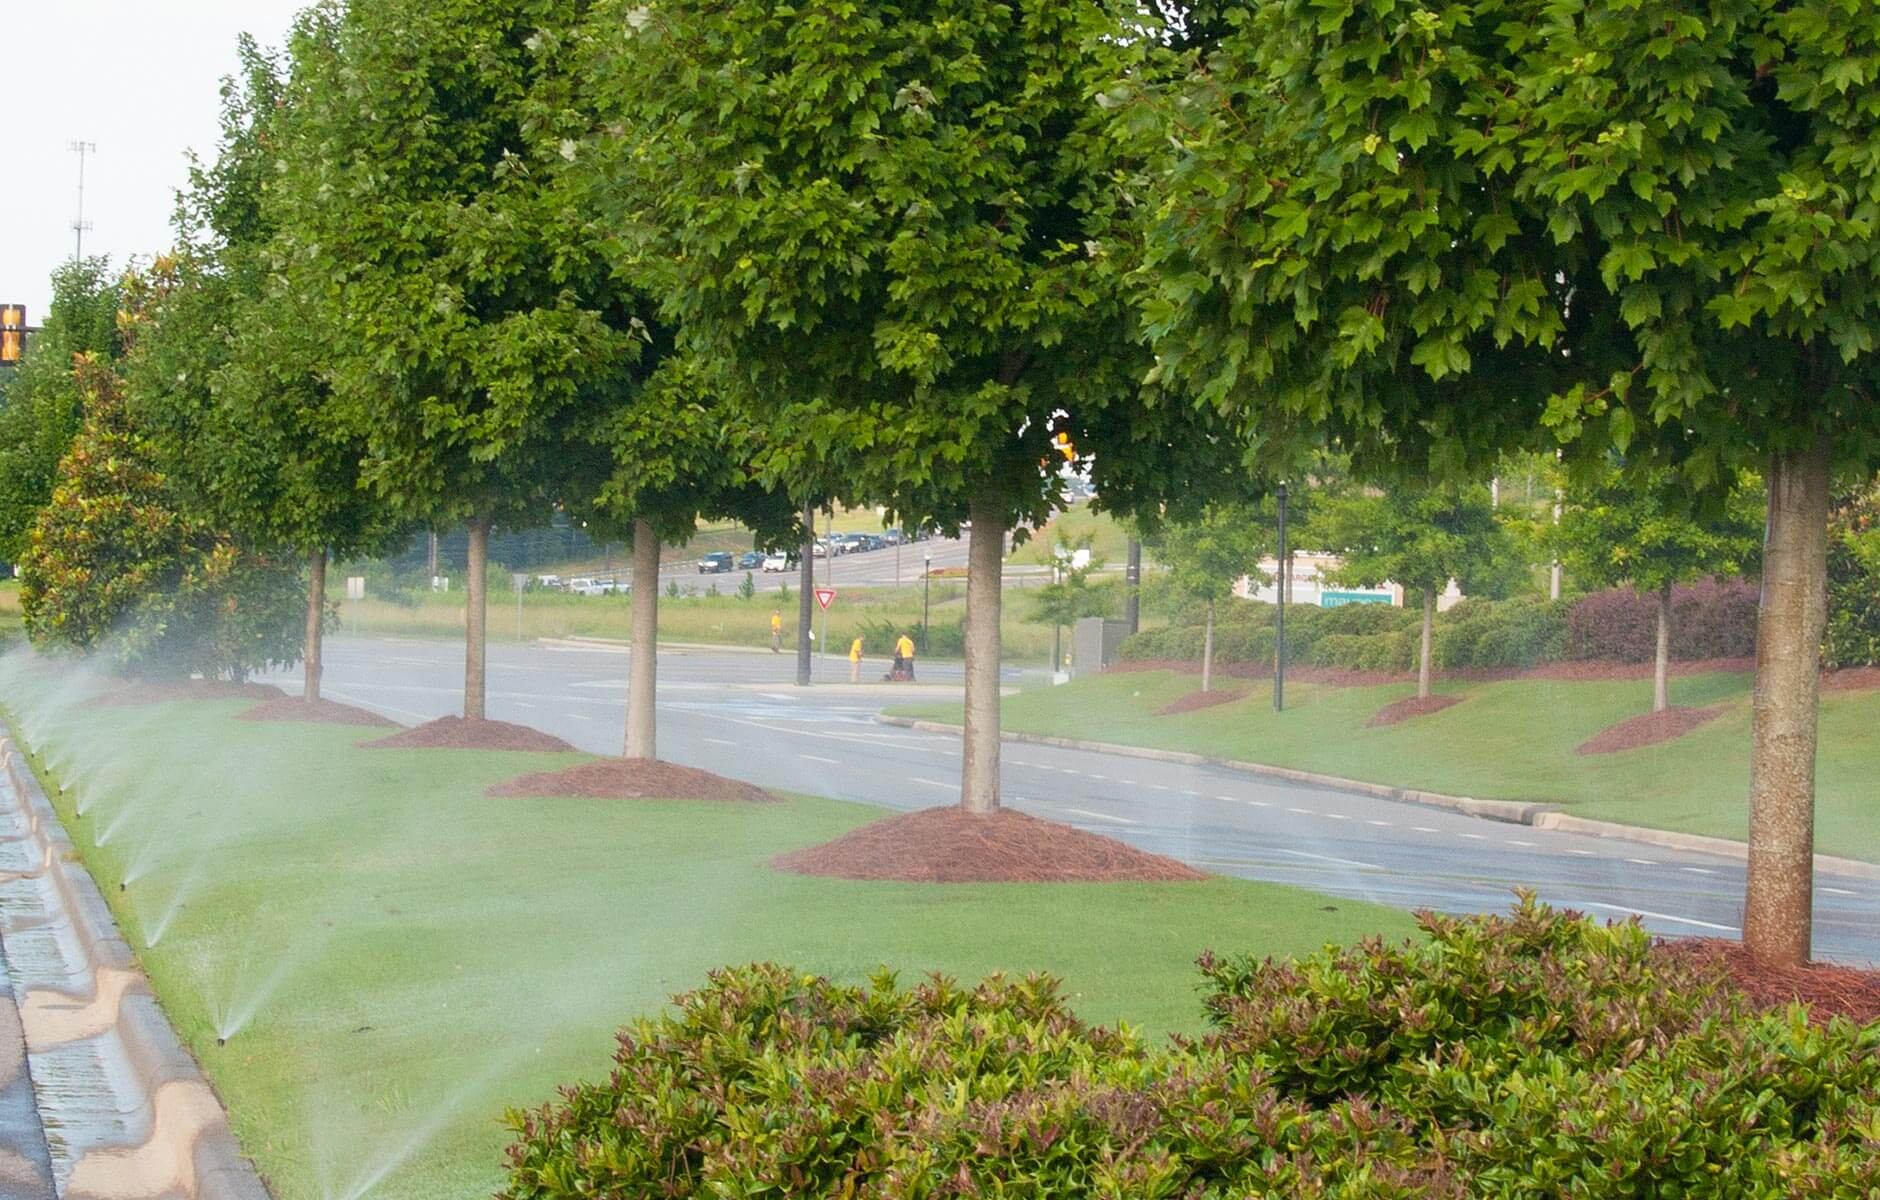 Irrigation system keeping the grass and tress green at a retail property